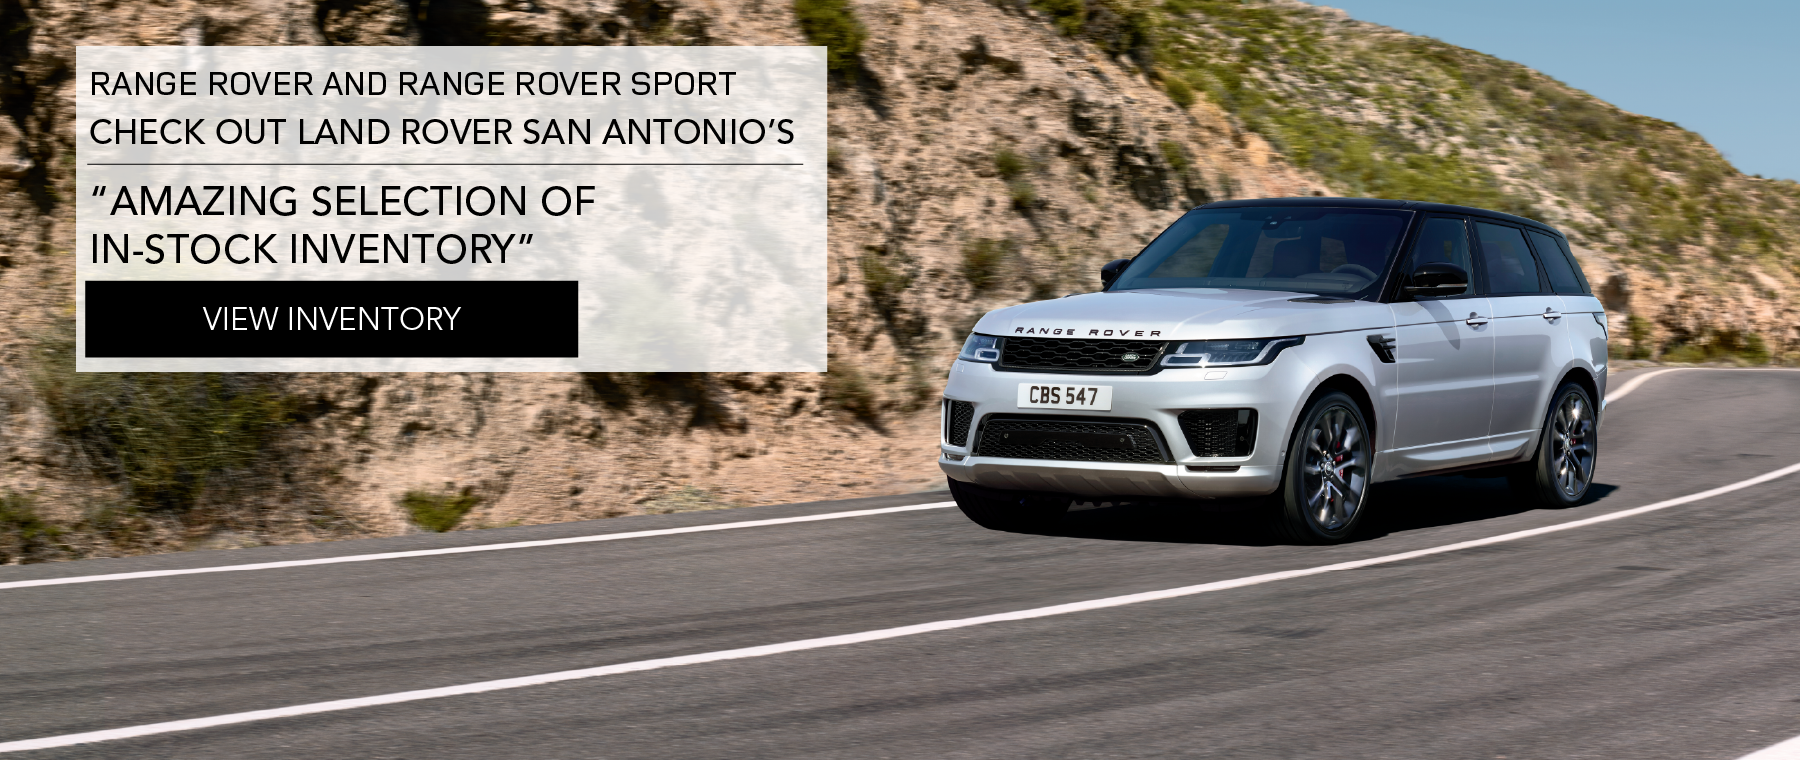 RANGE ROVER AND RANGE ROVER SPORT. CHECK OUT LAND ROVER SAN ANTONIO'S. AMAZING SELECTION OF IN-STOCK INVENTORY. VIEW INVENTORY. SILVER  RANGE ROVER SPORT DRIVING THROUGH ROCKY TERRAIN.